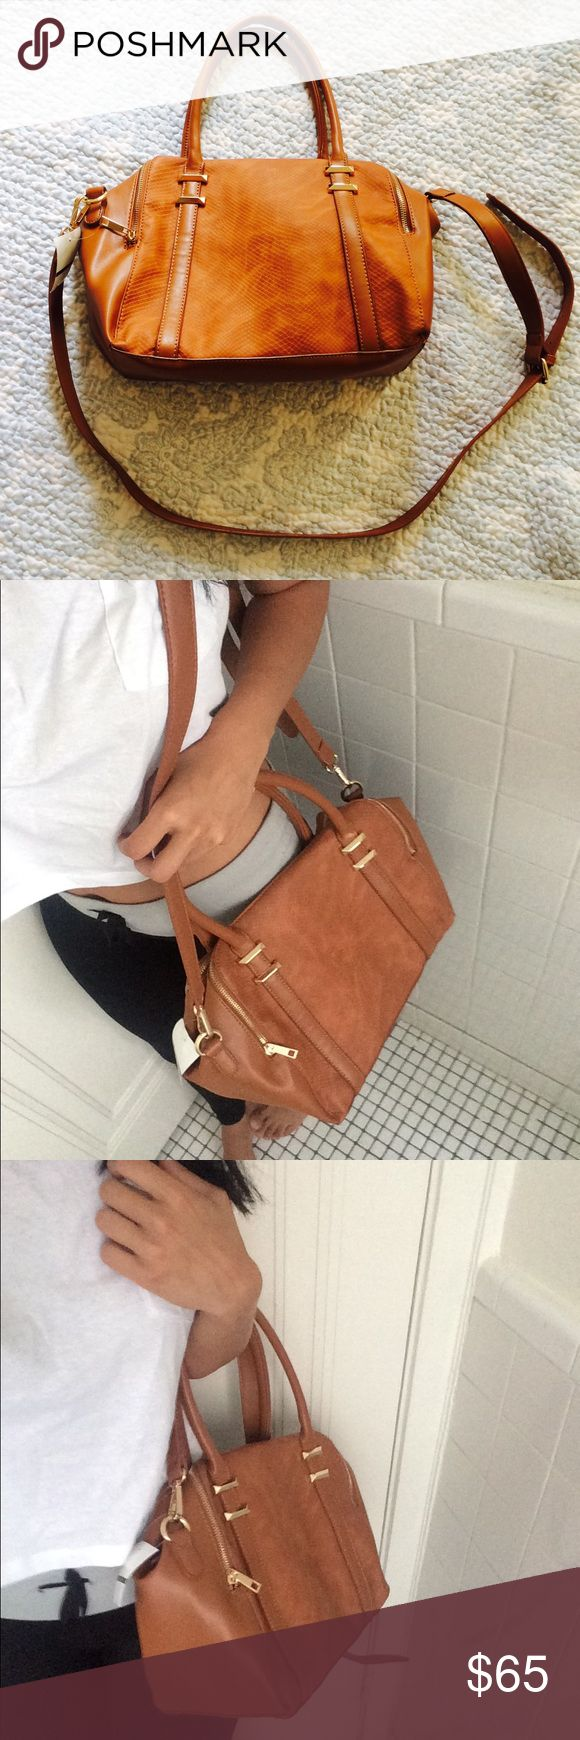 VEGAN LEATHER CAMEL BAG New bag perfect condition!  NO TRADES WELCOME! Vogue Italia Bags